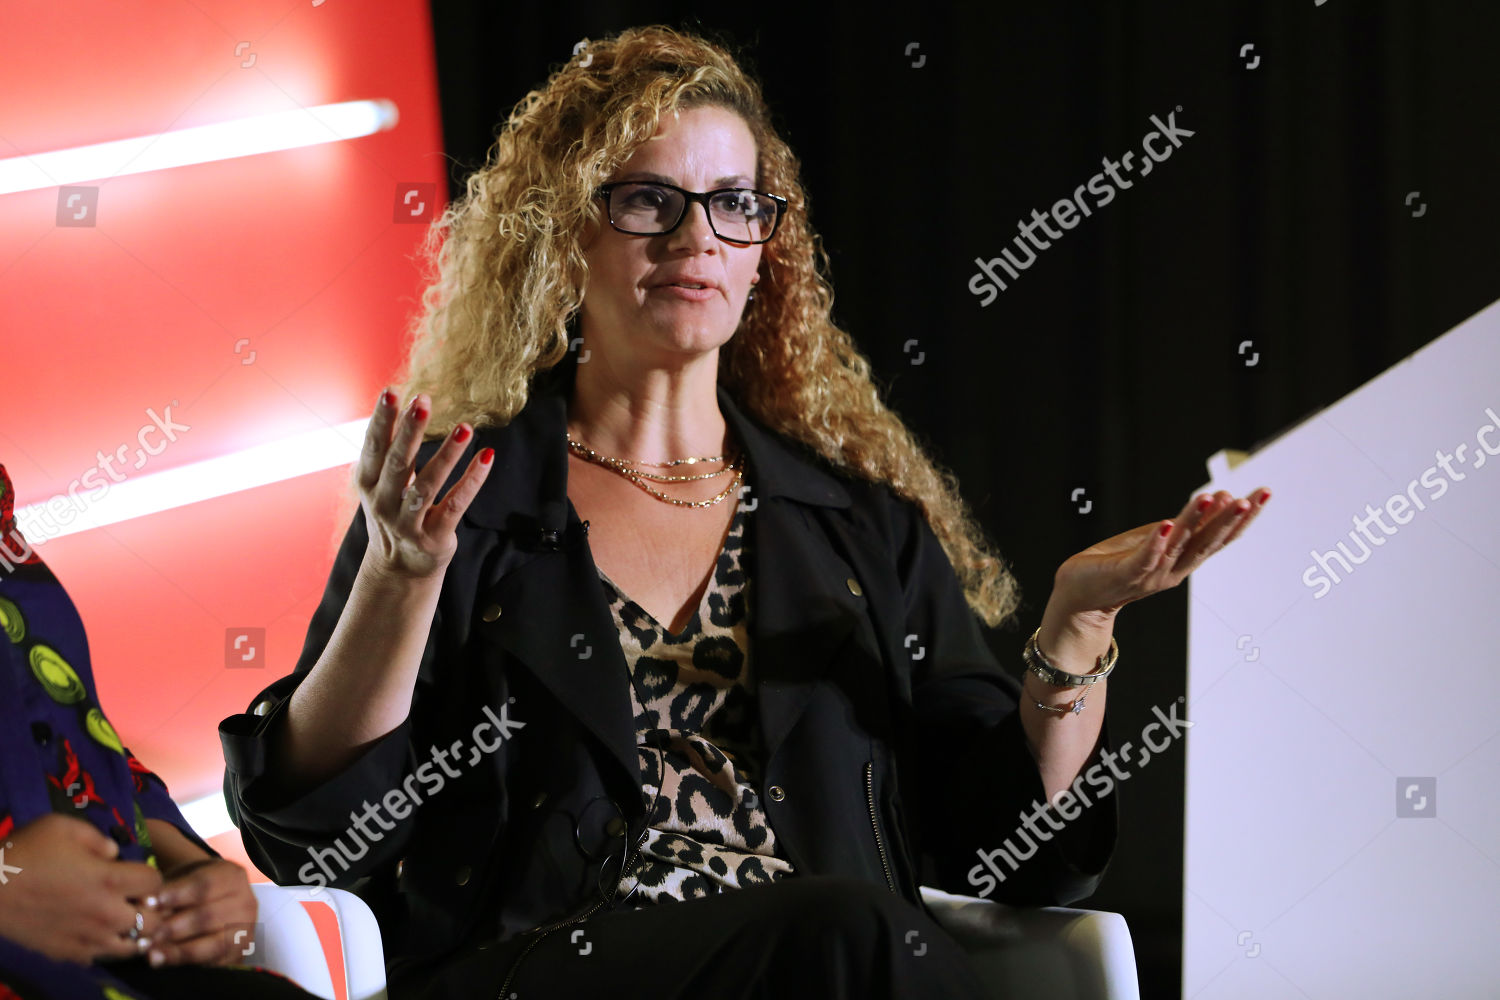 Stock photo of Social Shorts: Q and A with Leading Minds in Social Media seminar, Advertising Week New York, AMC Lincoln Square, New York, USA - 23 Sep 2019